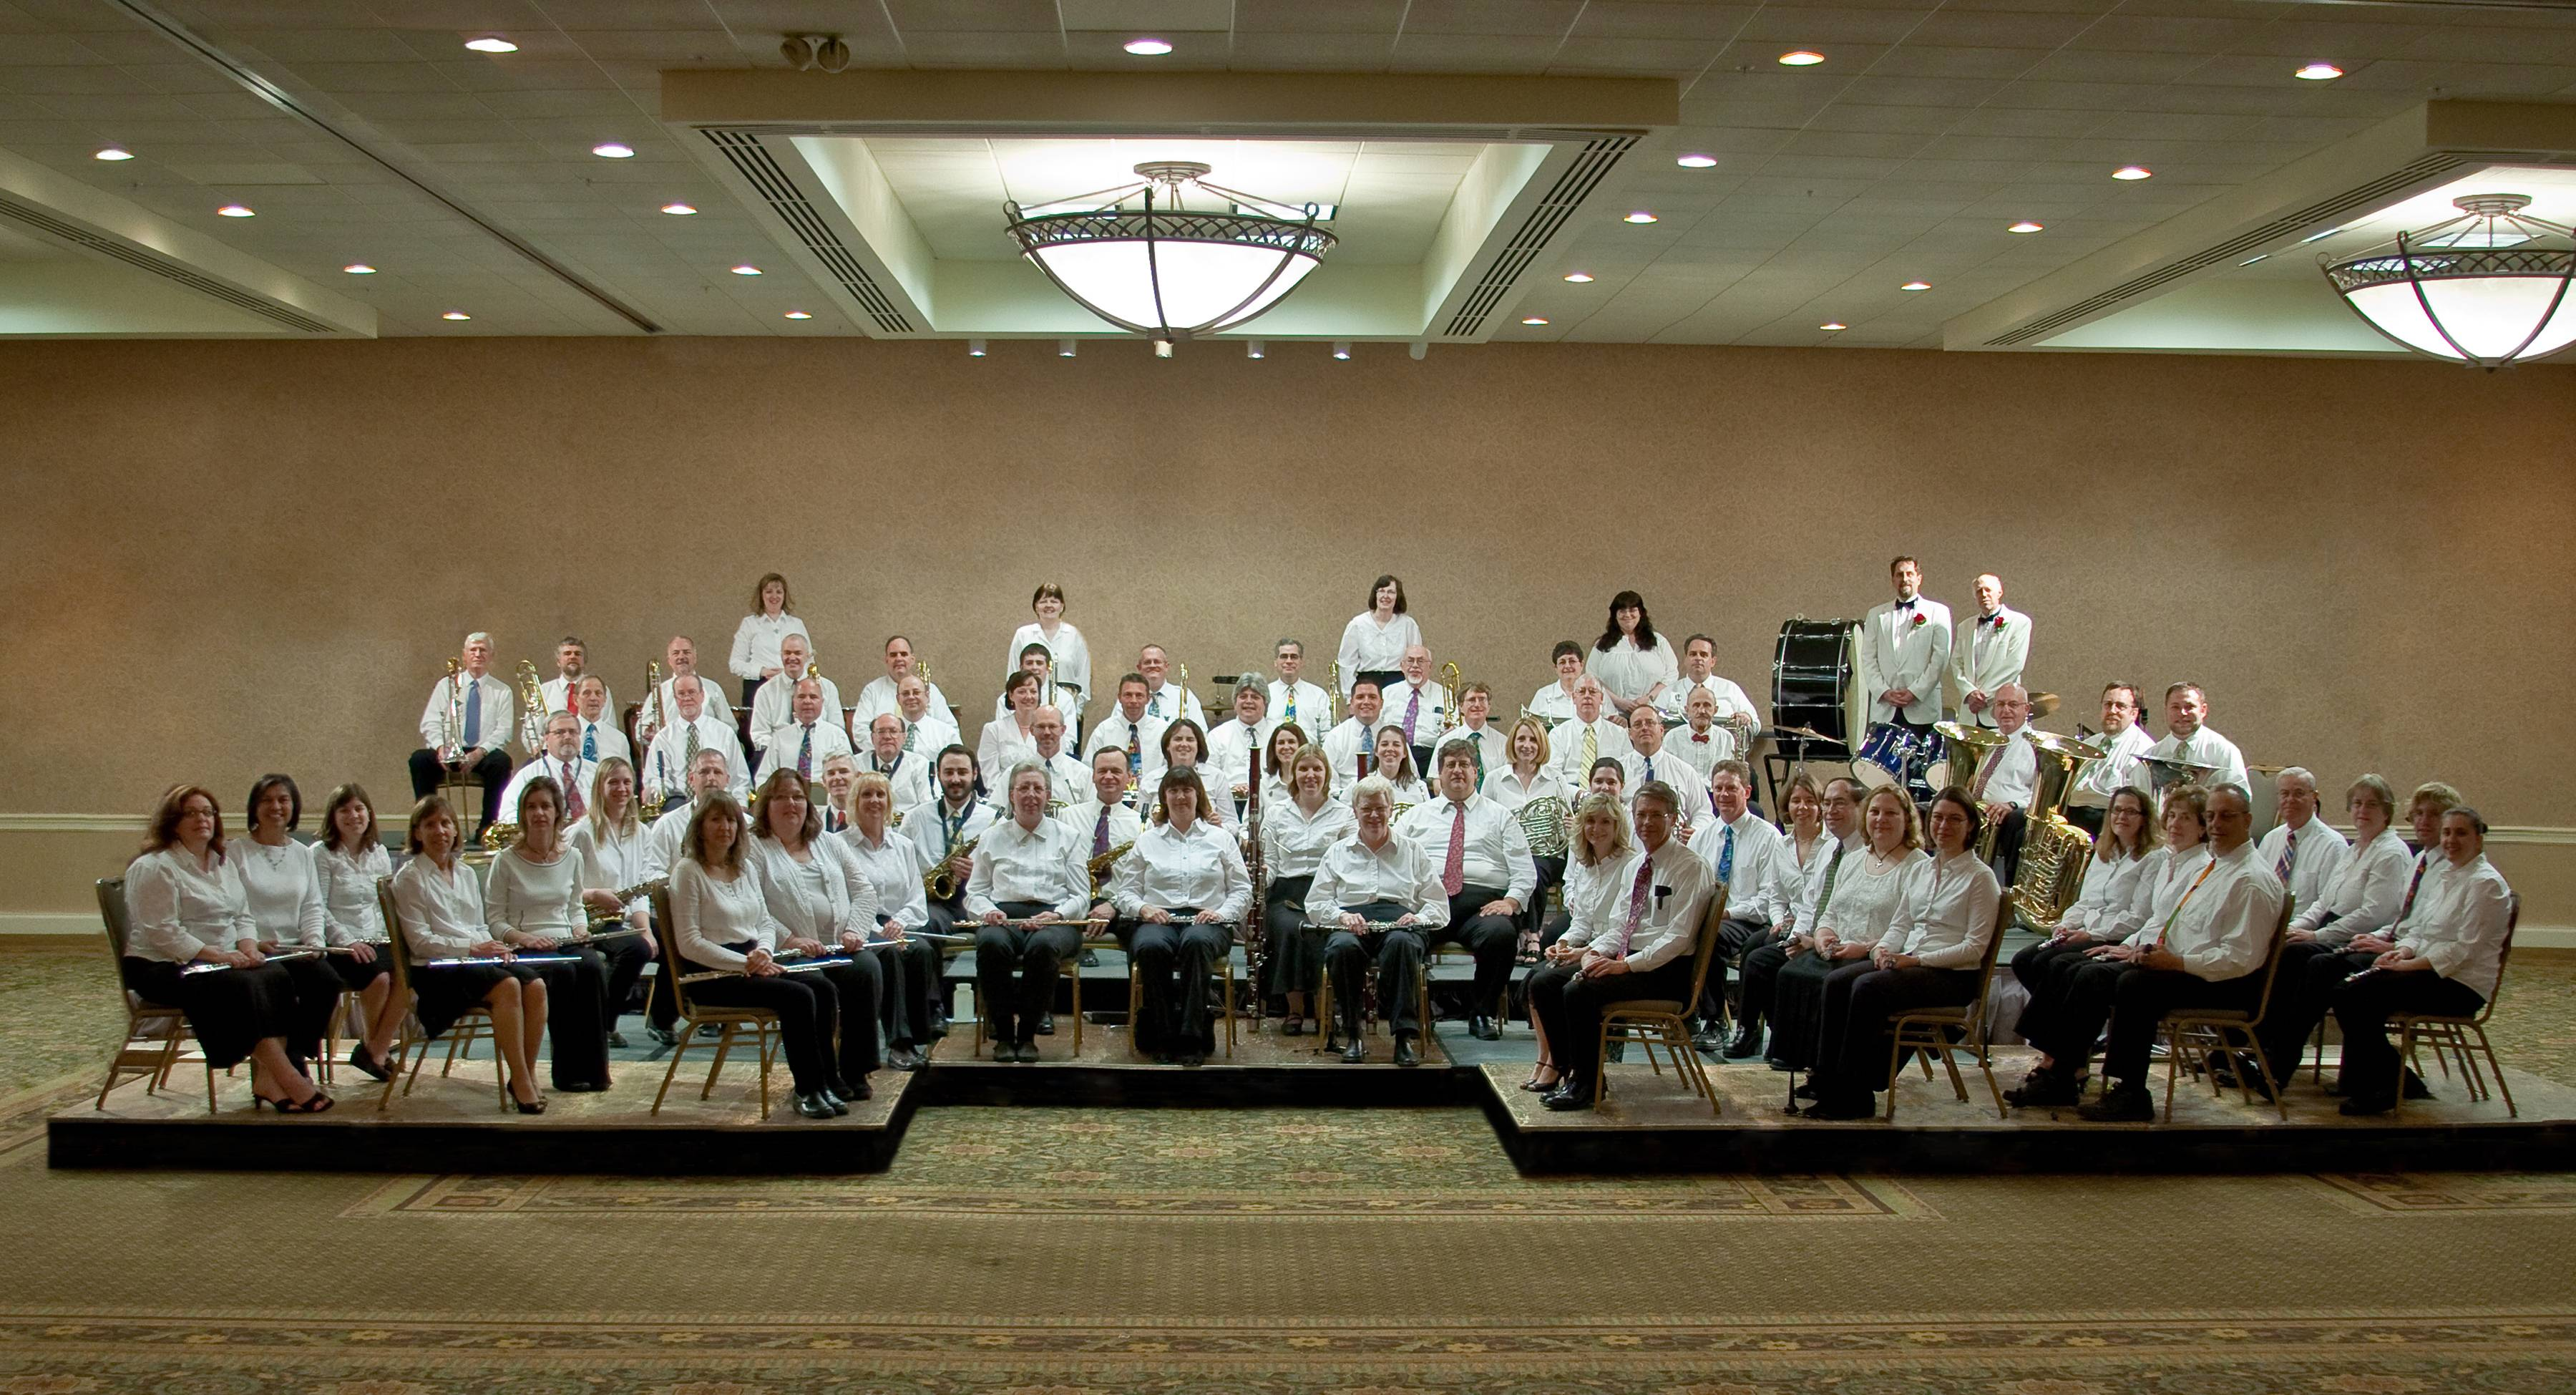 The 85 piece Crystal Lake Community Band